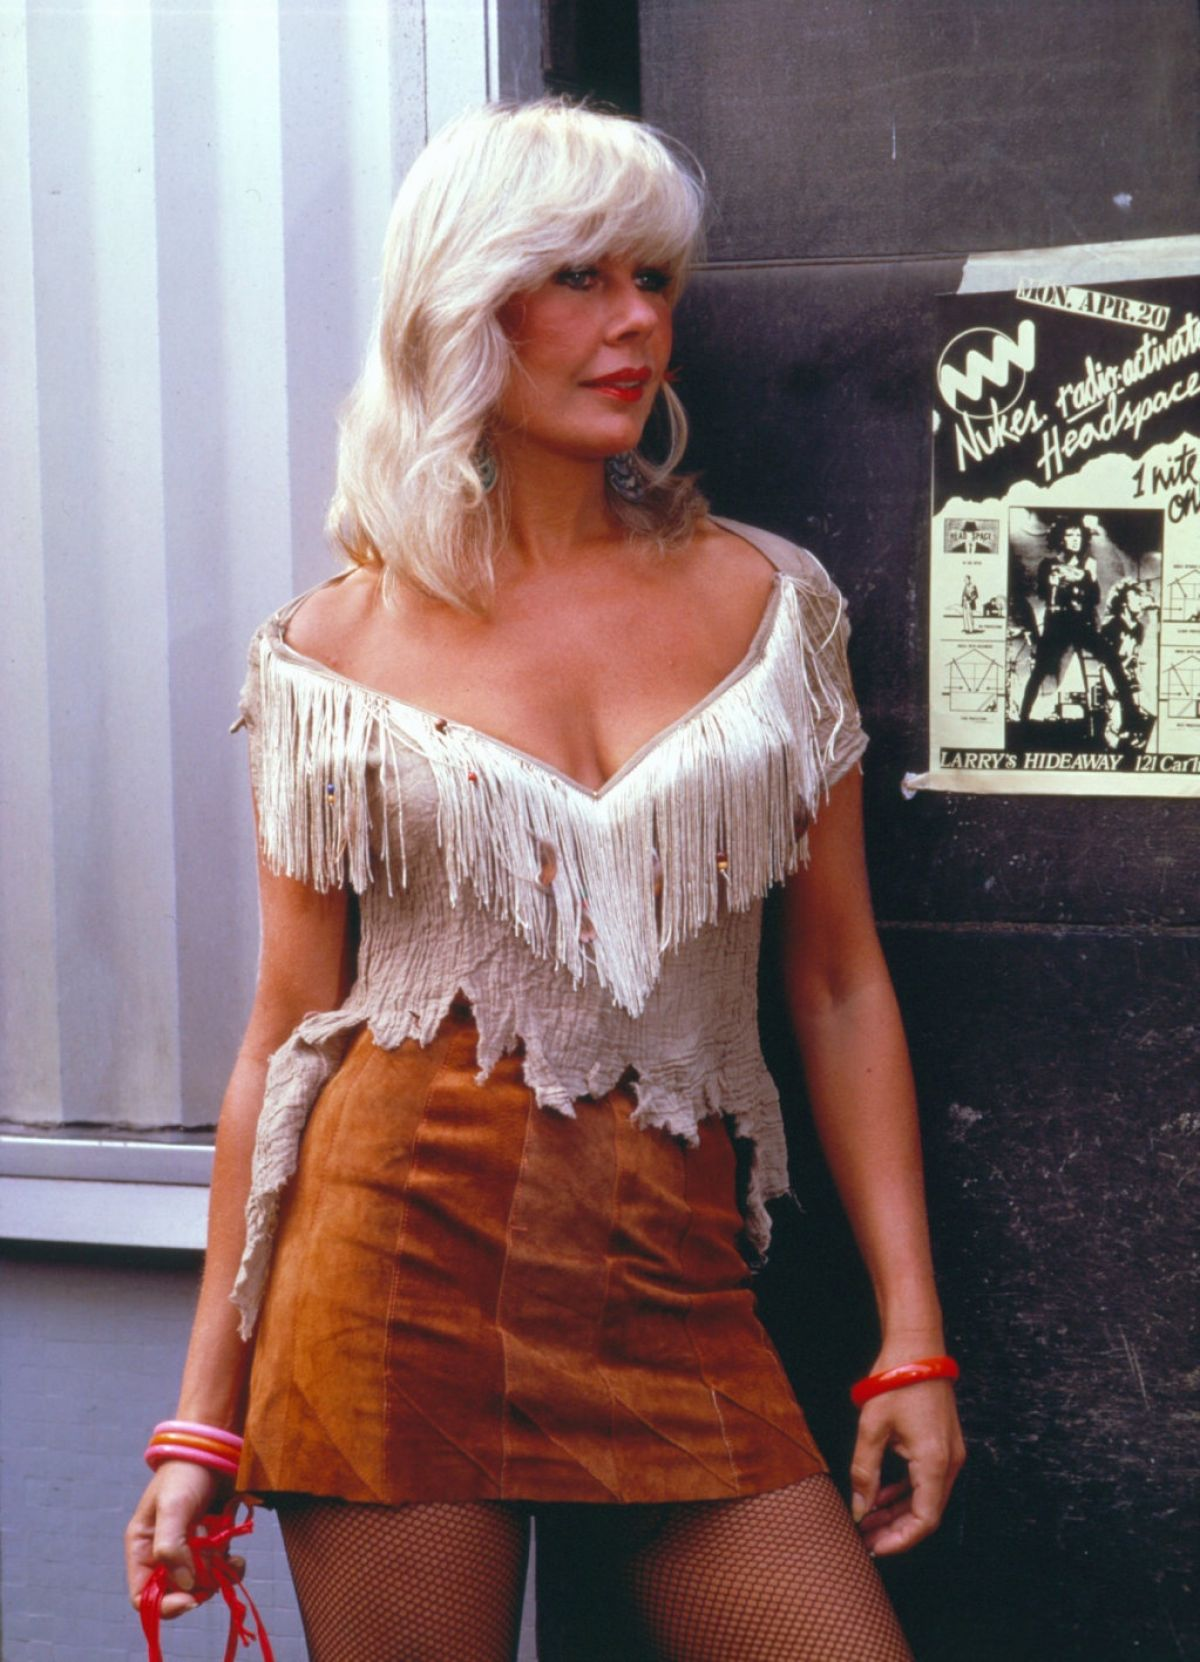 loretta swit imagesloretta swit twitter, loretta swit, loretta swit mash, loretta swit net worth, loretta swit now, loretta swit death, loretta swit plastic surgery, loretta swit imdb, loretta swit feet, loretta swit images, loretta swit hot, loretta swit measurements, loretta swit gunsmoke, loretta swit nipples